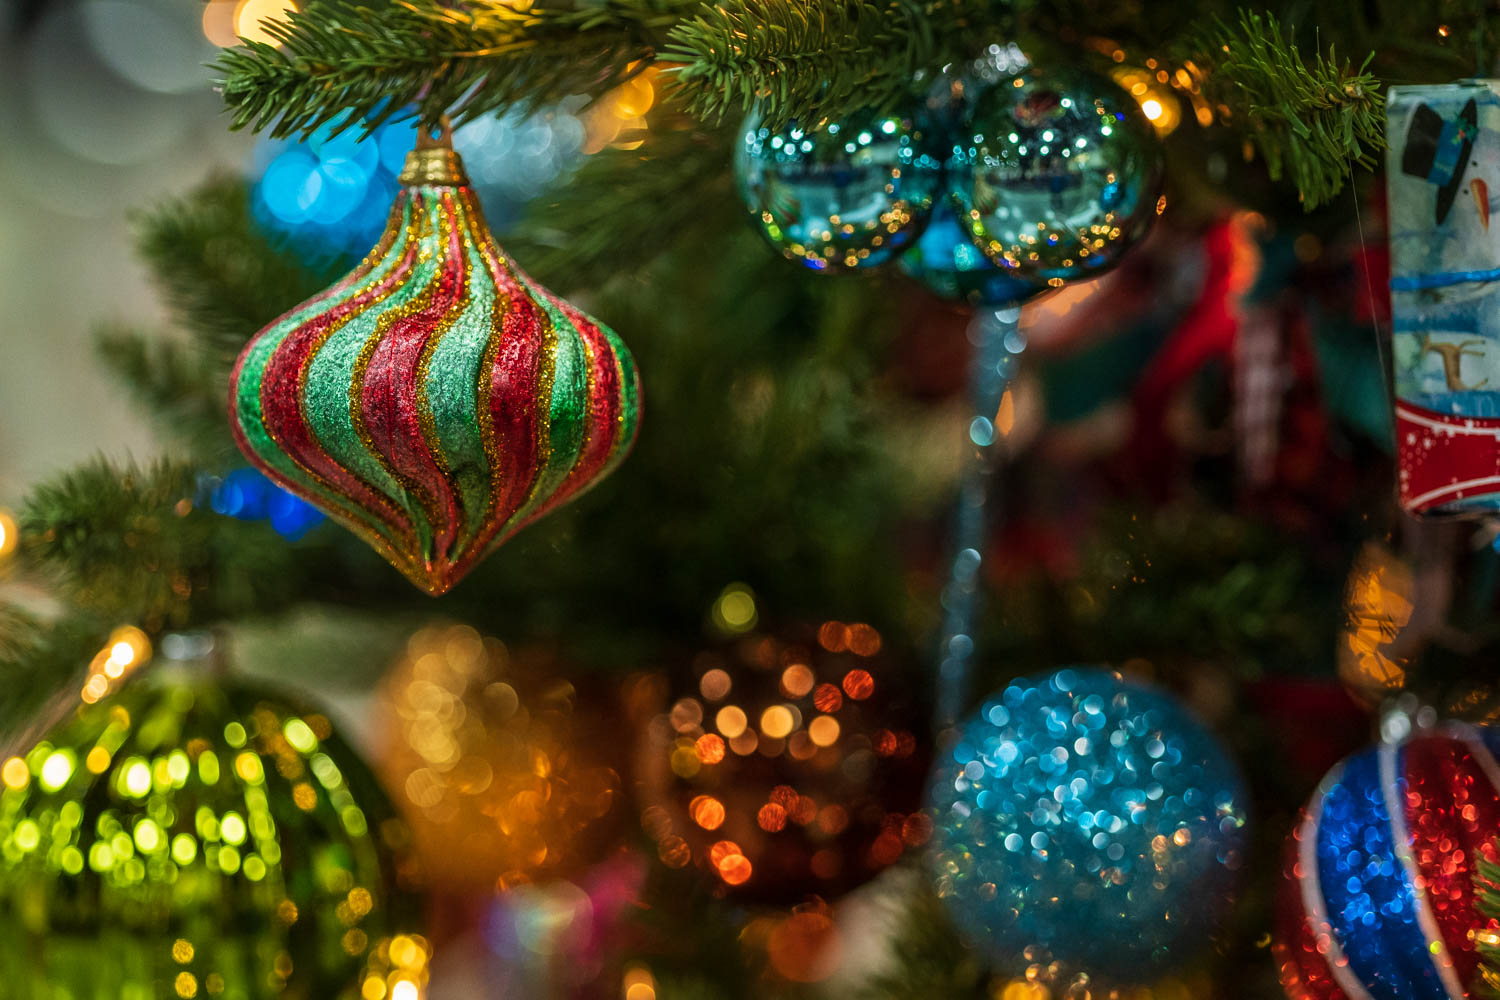 Blue, red, and green decorations